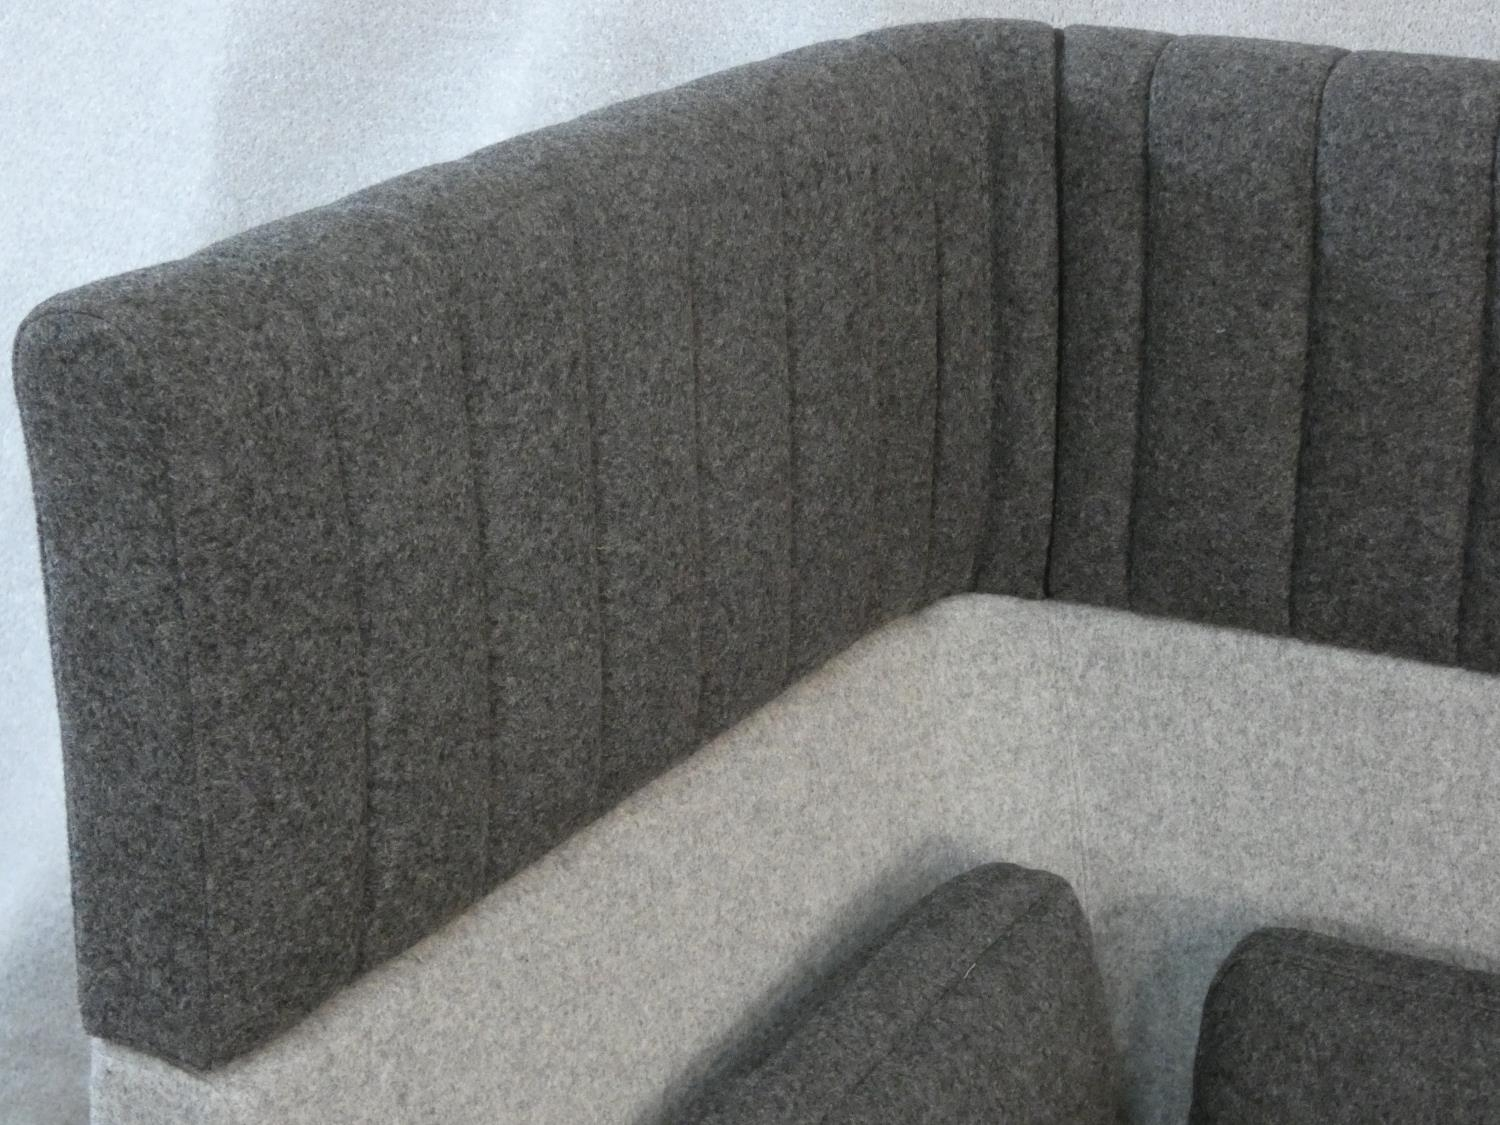 Mark Gabbertas for Allermuir, a Haven sofa in two tones of grey. H.118xW.200xD.81cm - Image 8 of 10